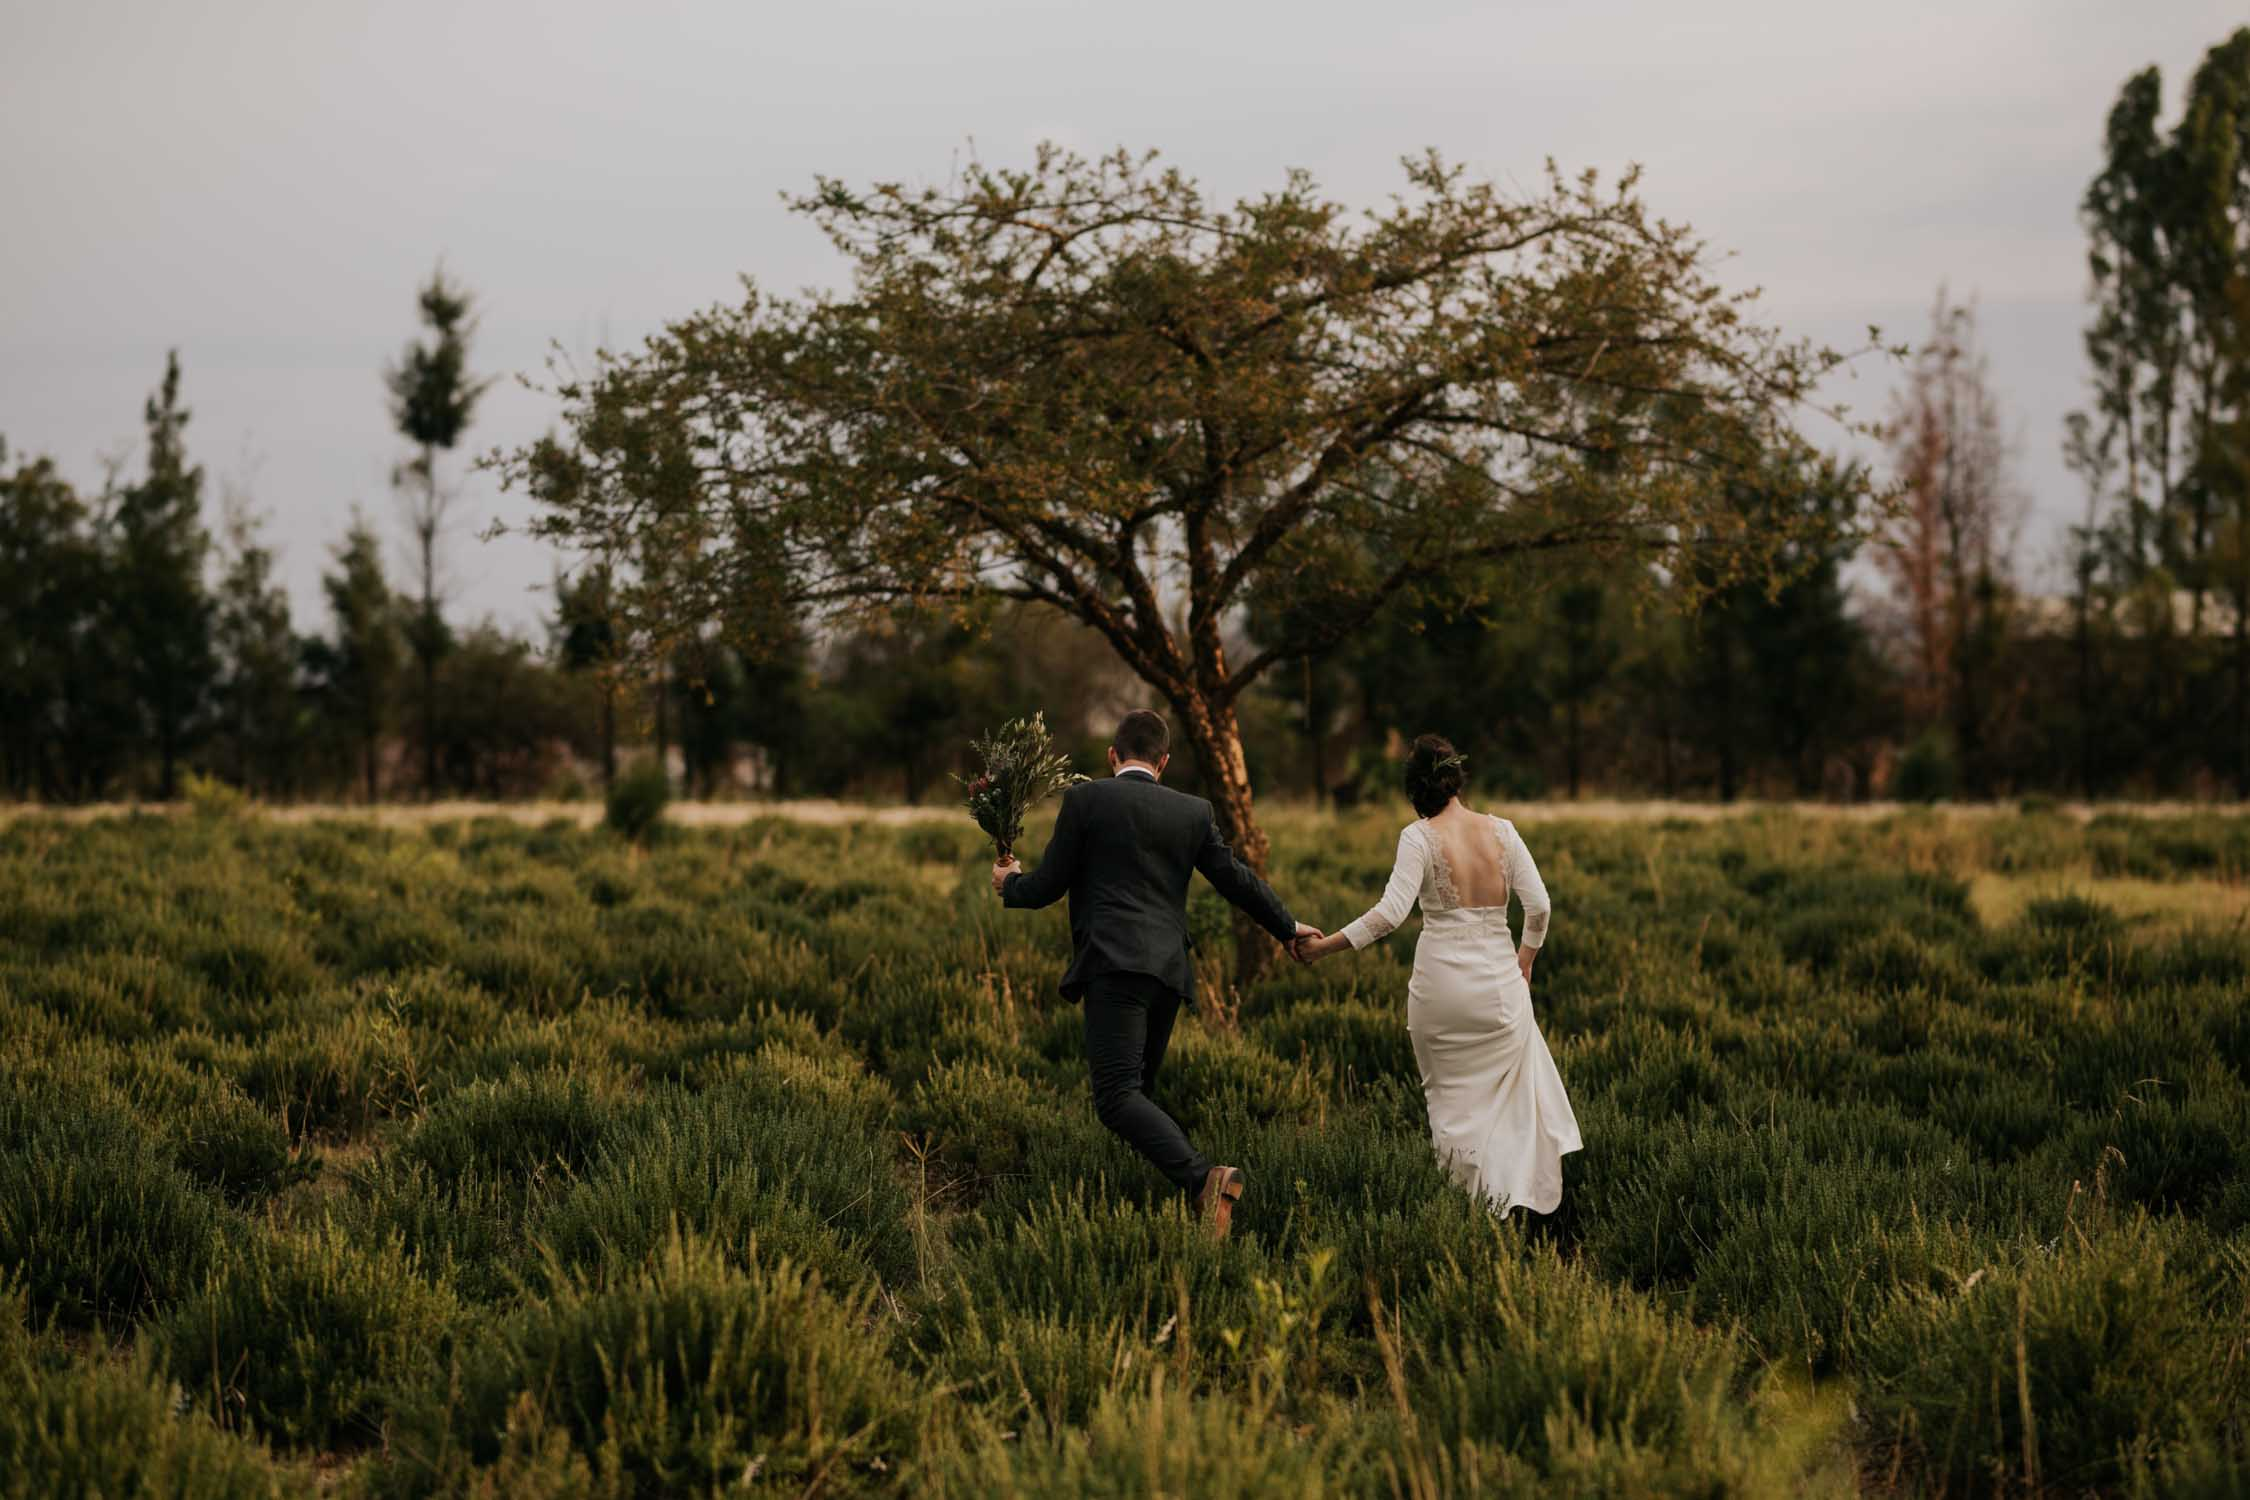 Happy and fun photo of bride and groom running through a field taken by photojournalistic Vancouver Wedding Photographer